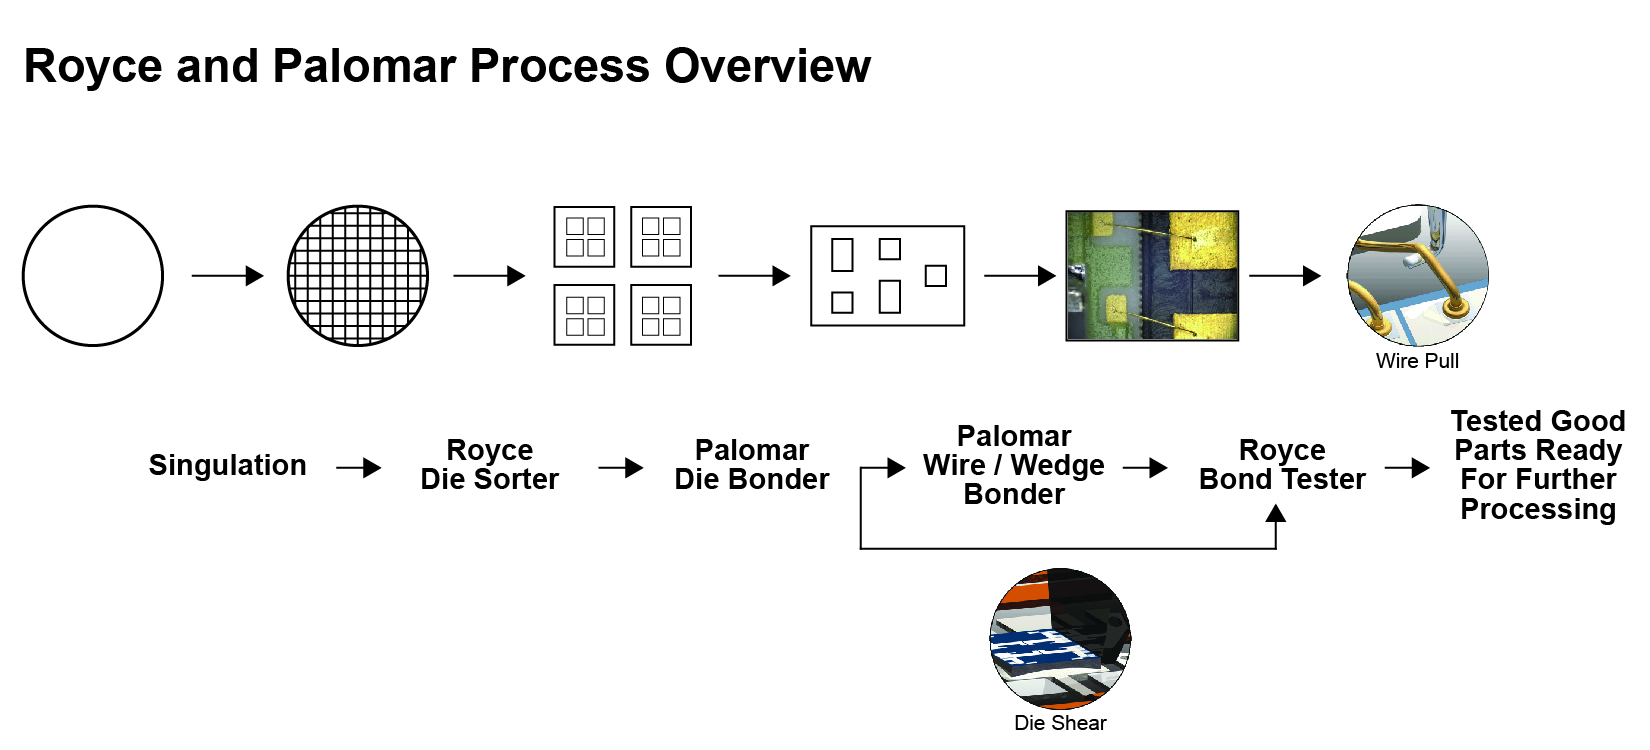 Royce_Palomar_Process_Overview.jpg